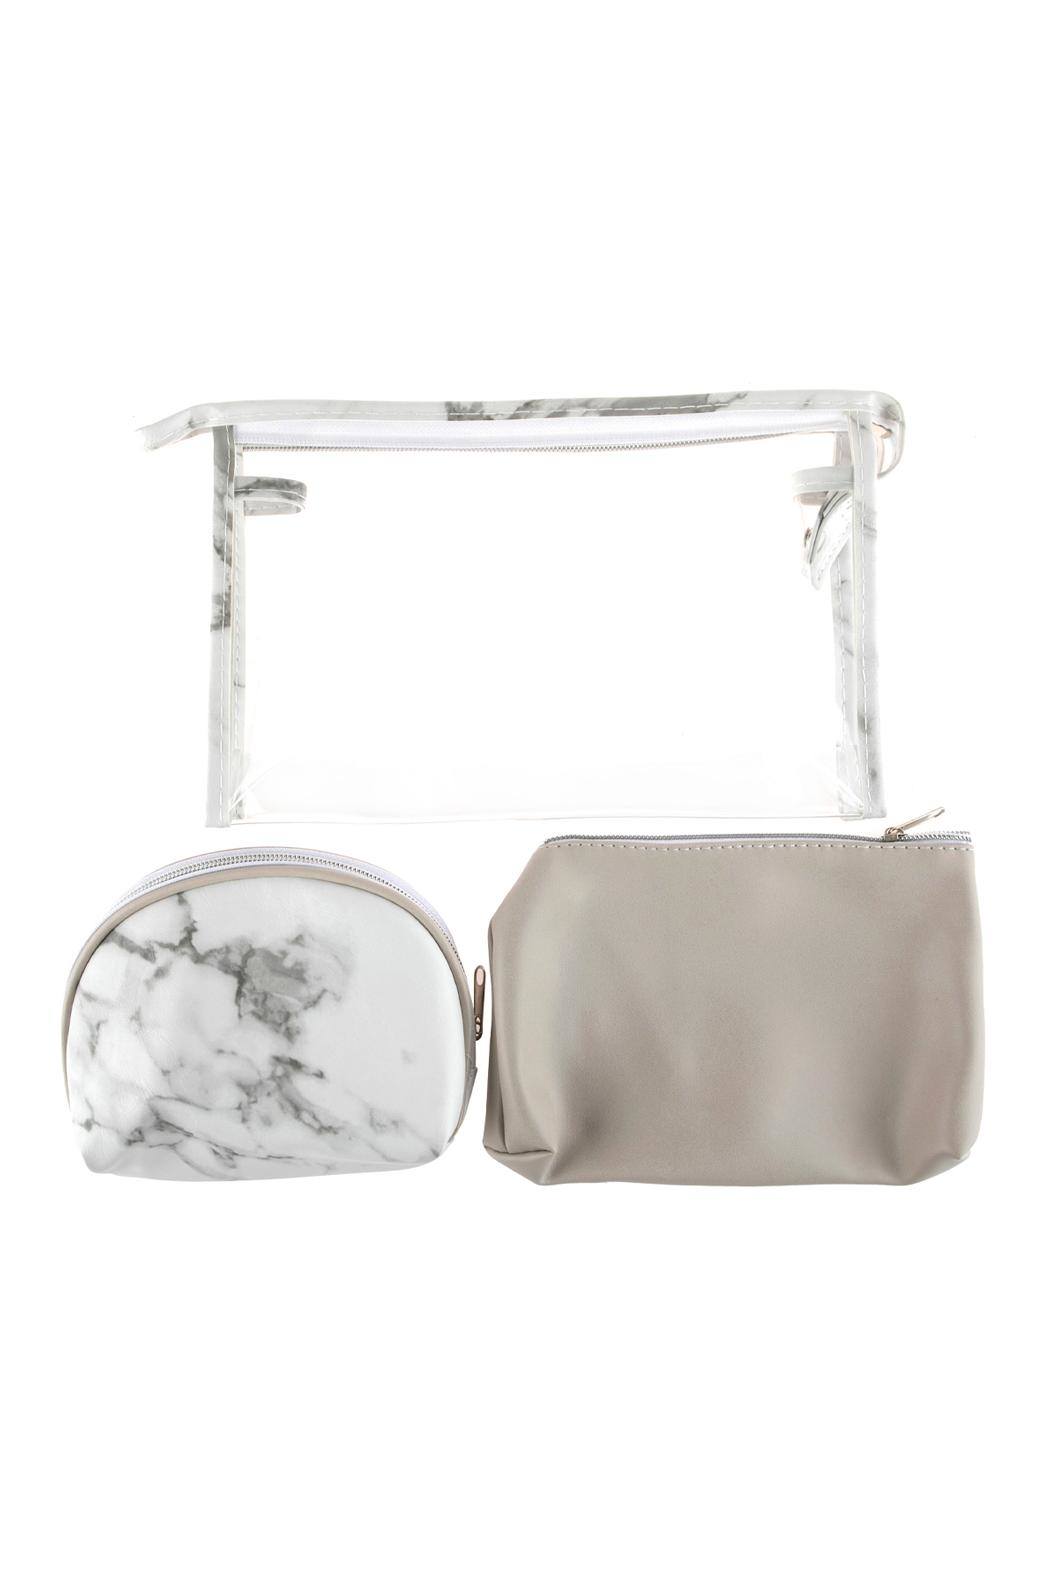 Riah Fashion Clear-Cosmetic-Bags With 2-Sets-Of-Leather-Pouches - Front Full Image